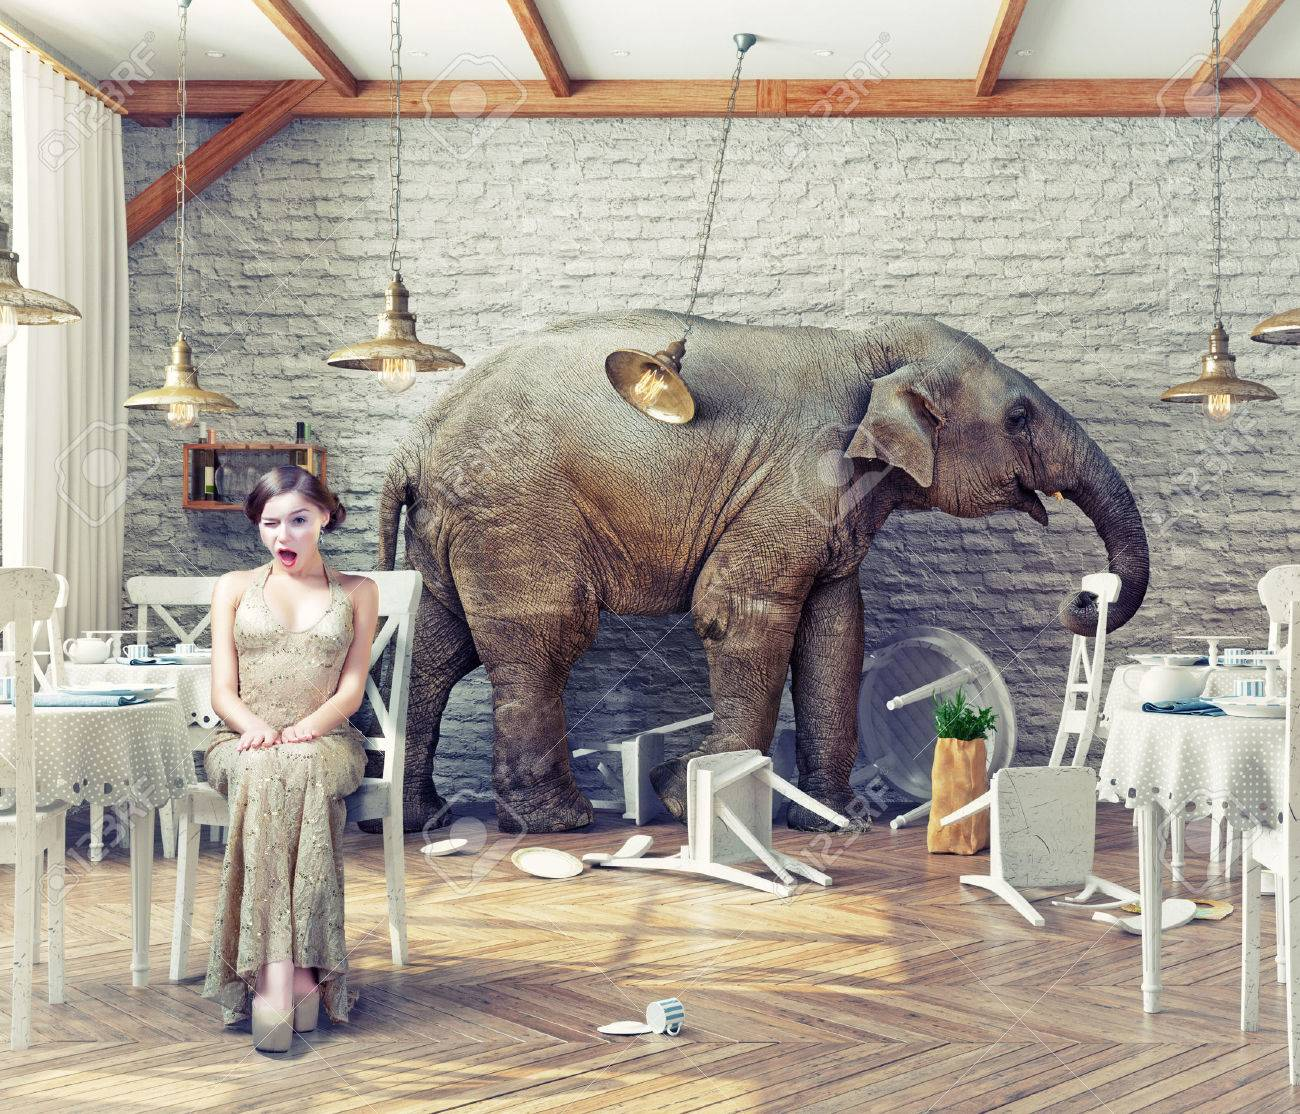 the elephant calm in a restaurant interior. photo combination concept Standard-Bild - 47972007